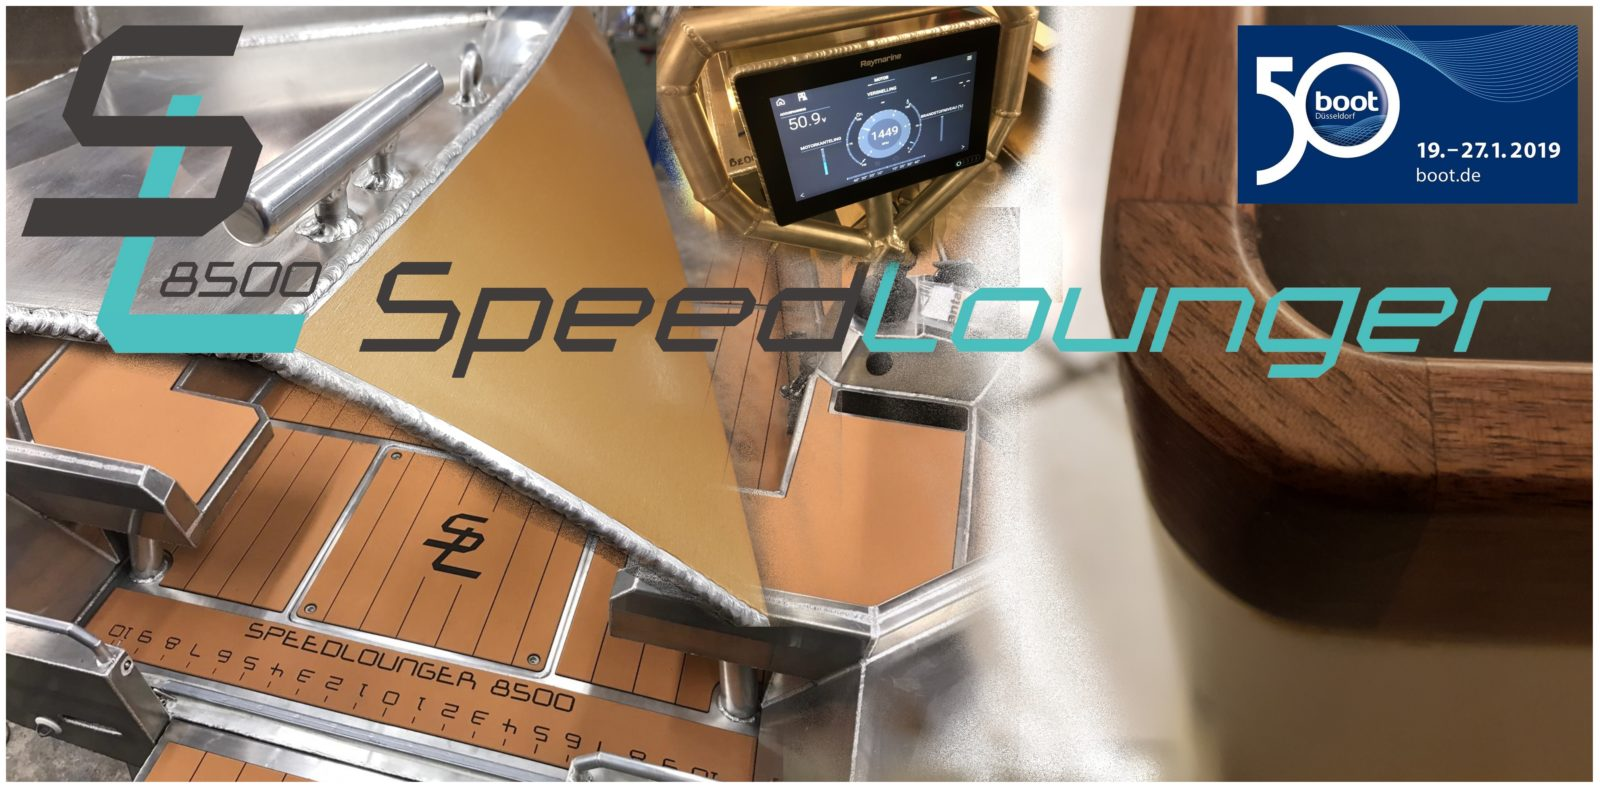 Speedlounger FB 4